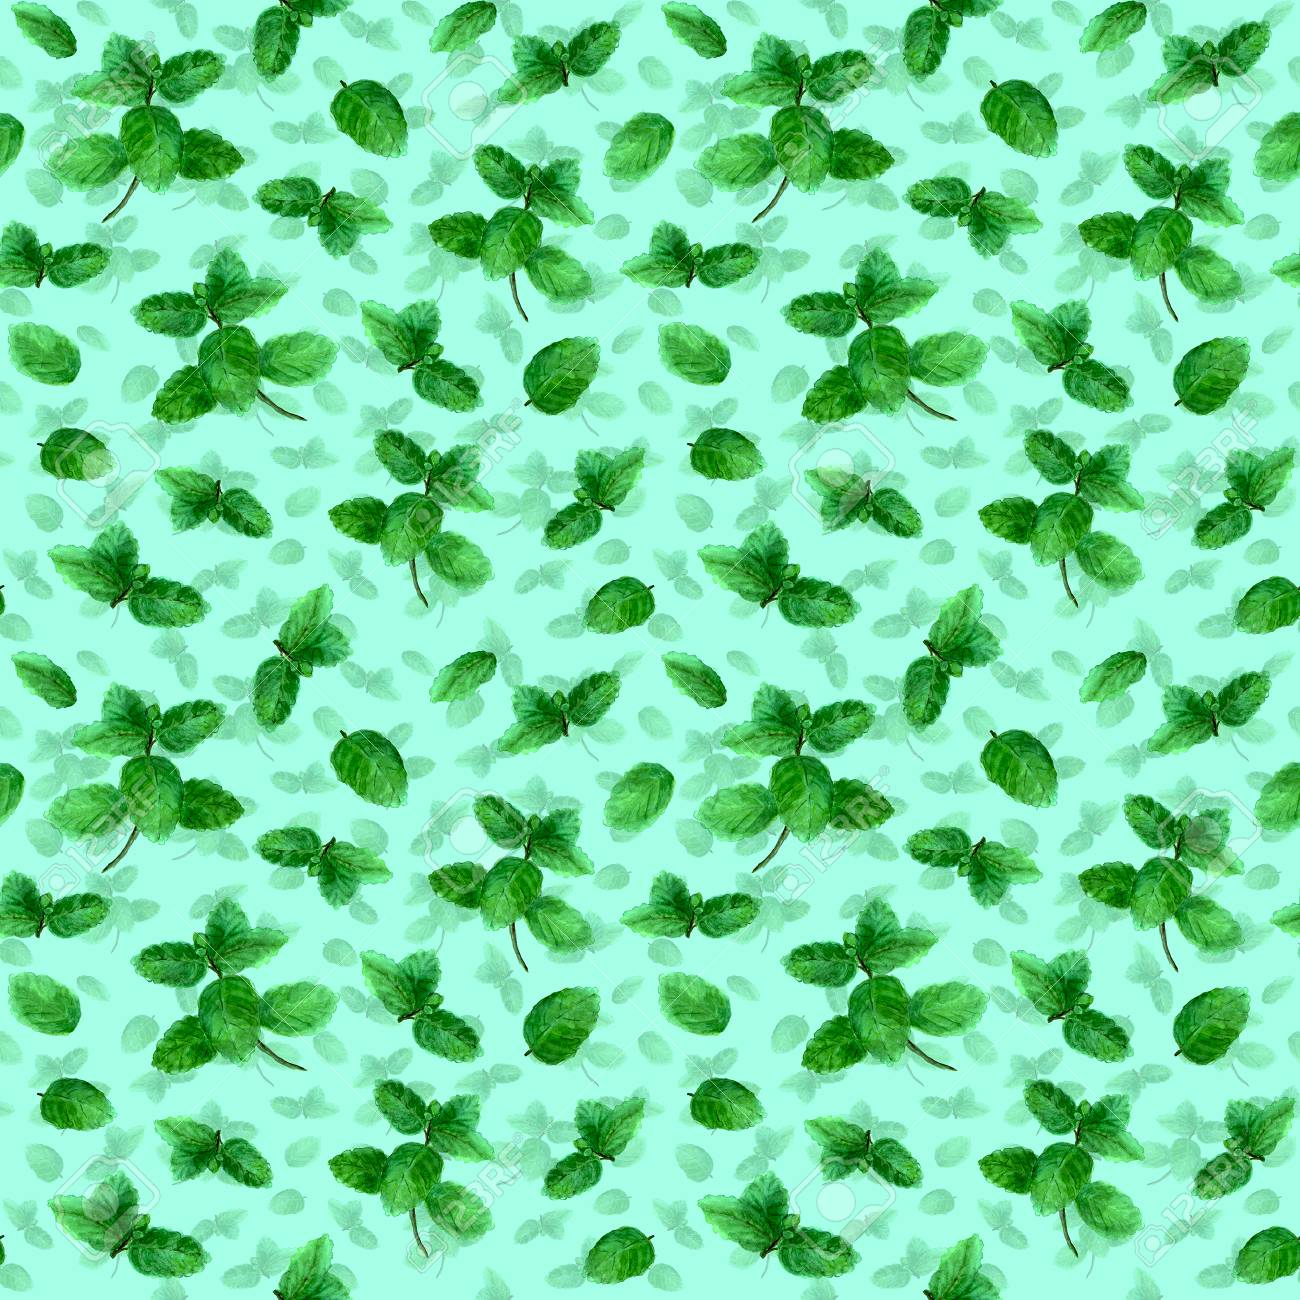 Mint Herb Spice Leaves Seamless Pattern On Teal Background